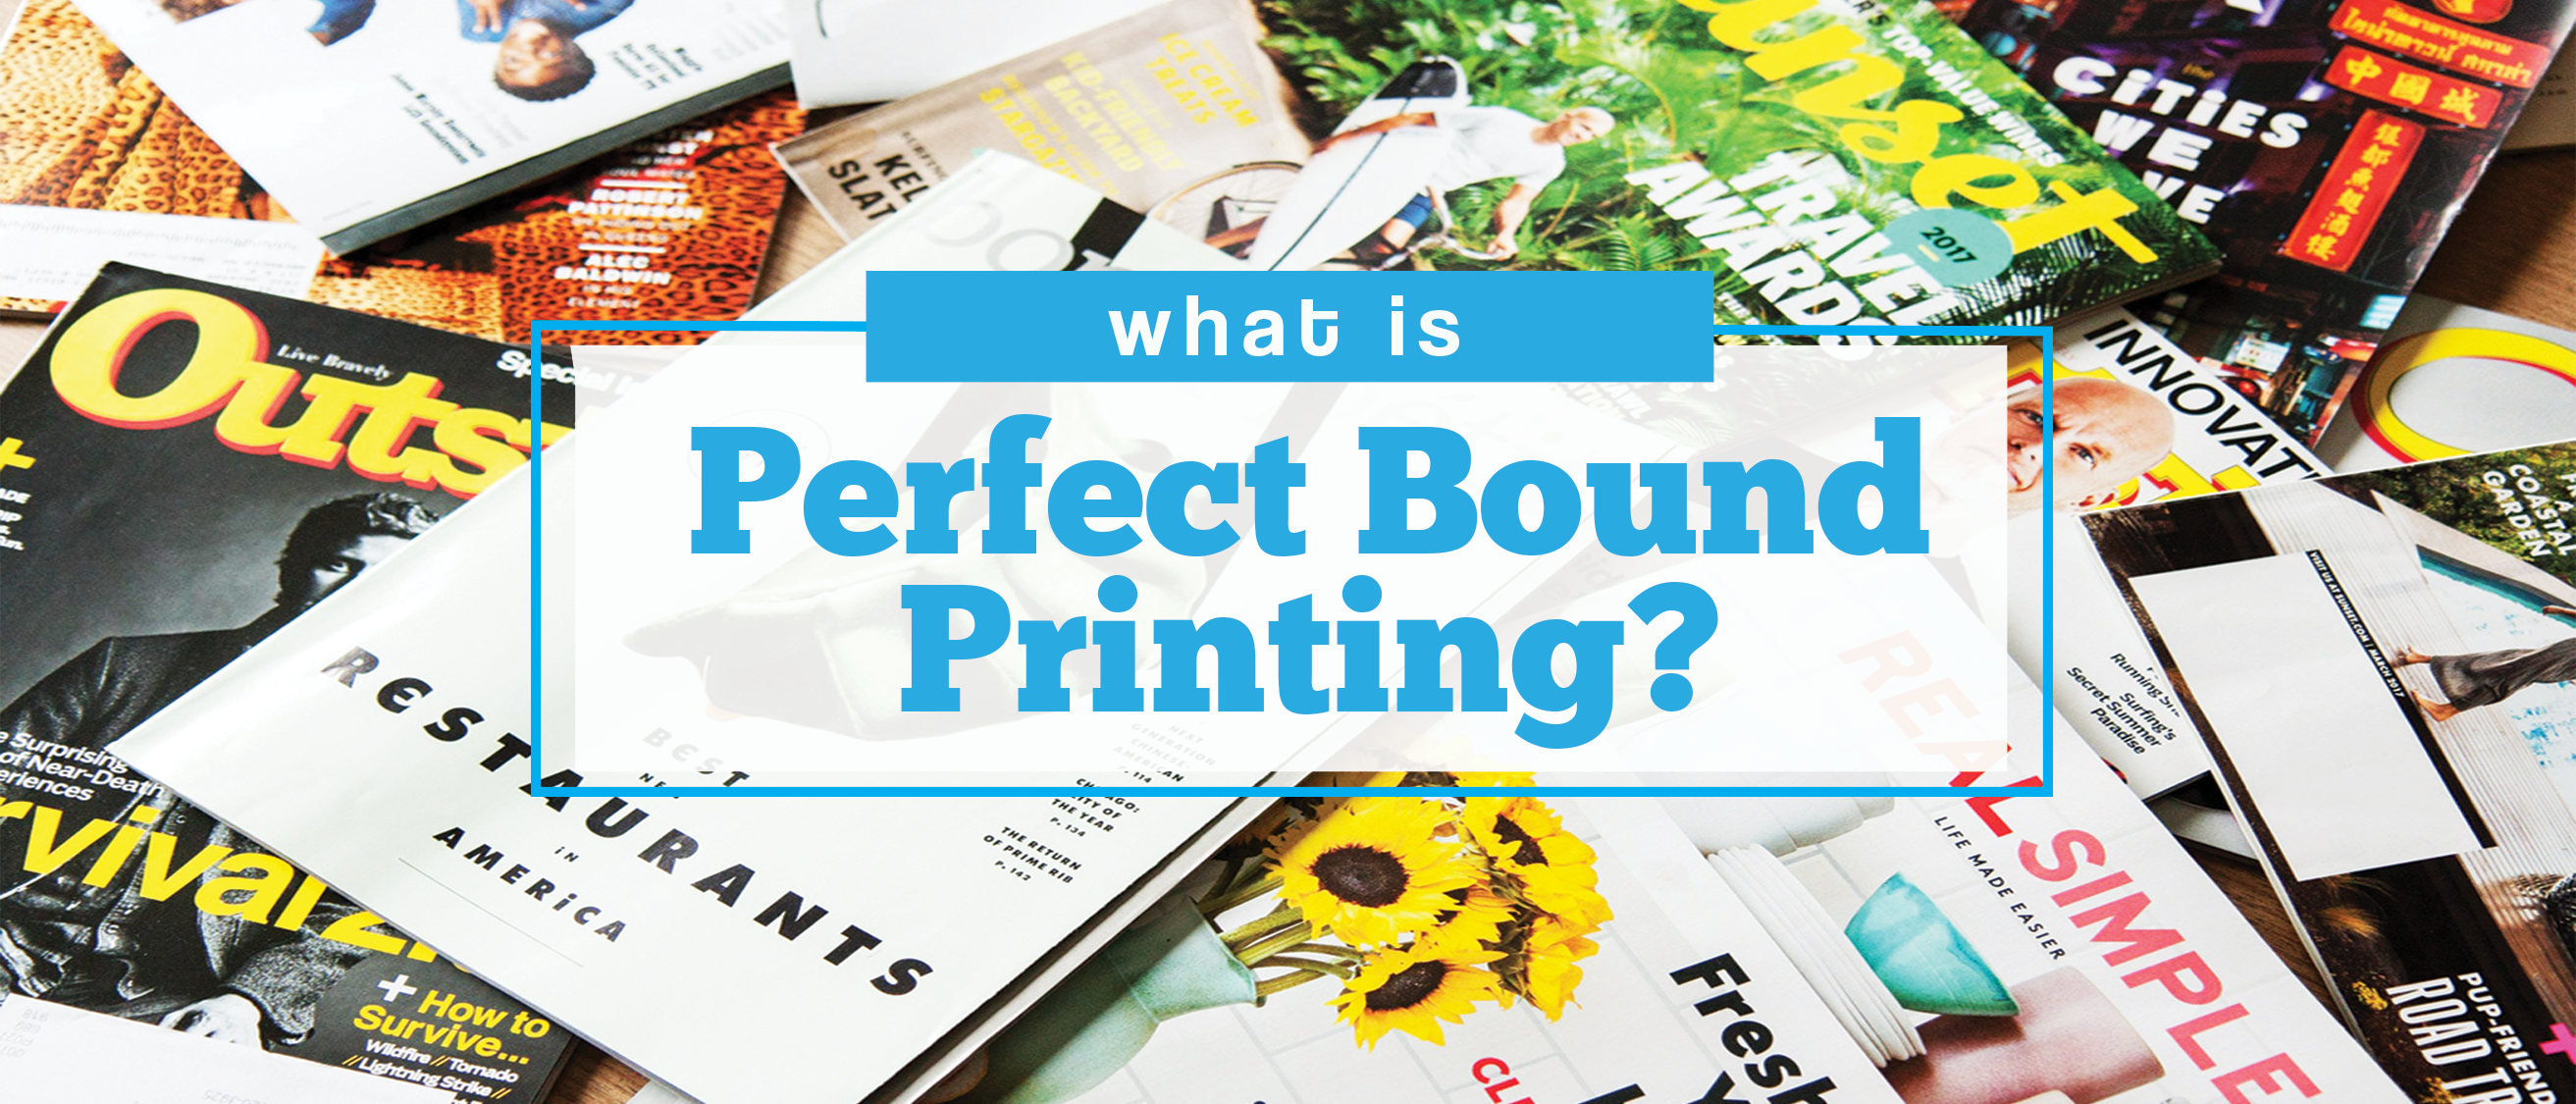 what is perfect bound printing?